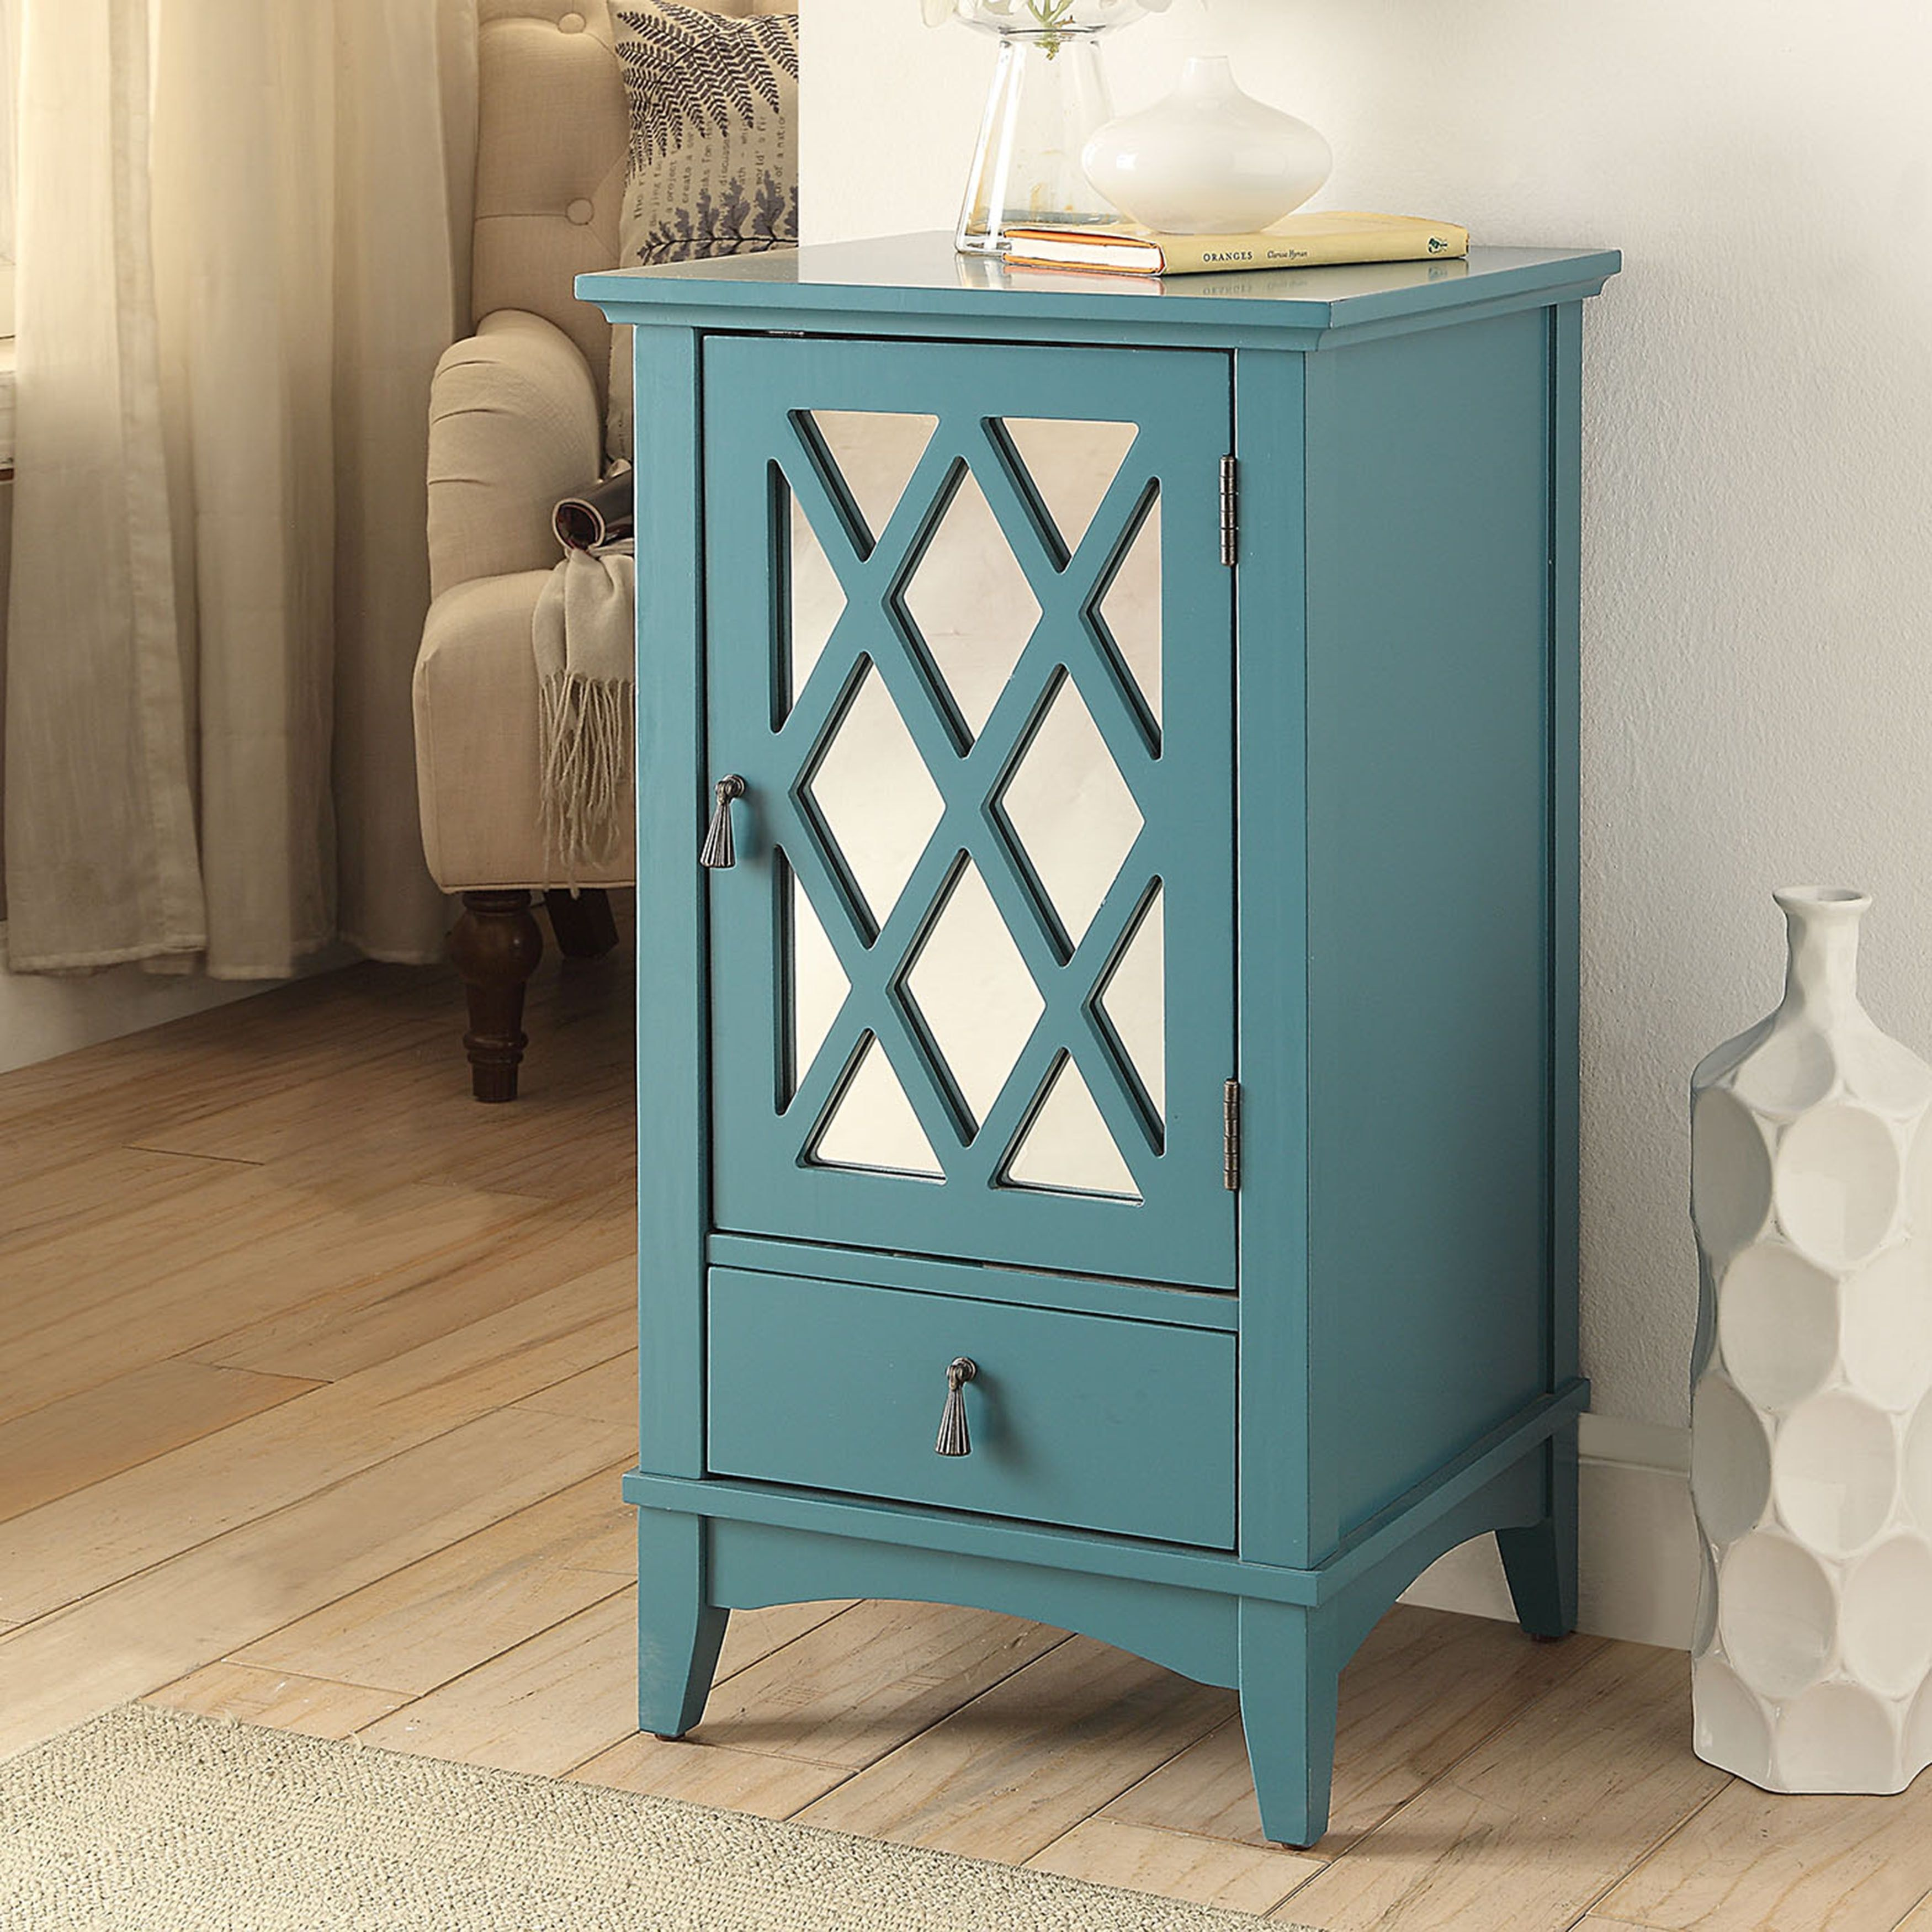 Luxury End Table Cabinet Storage